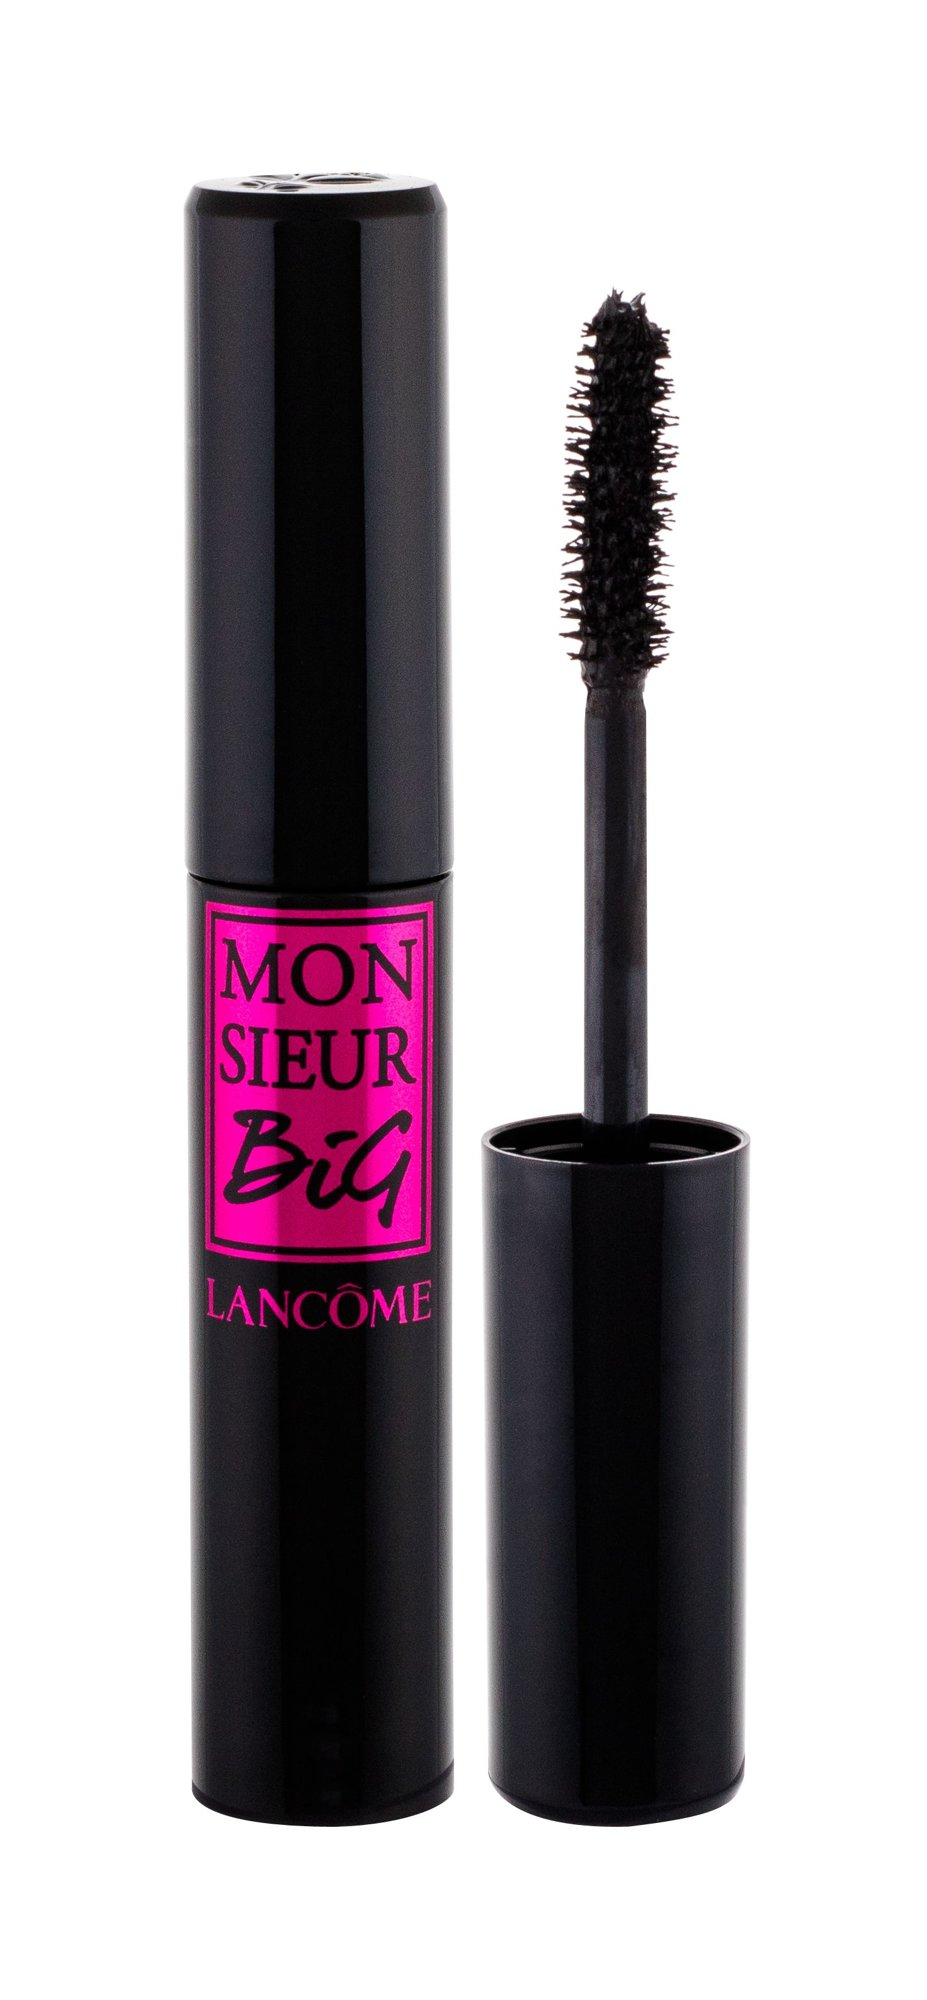 Lancôme Monsieur Big Mascara 10ml 02 Brown